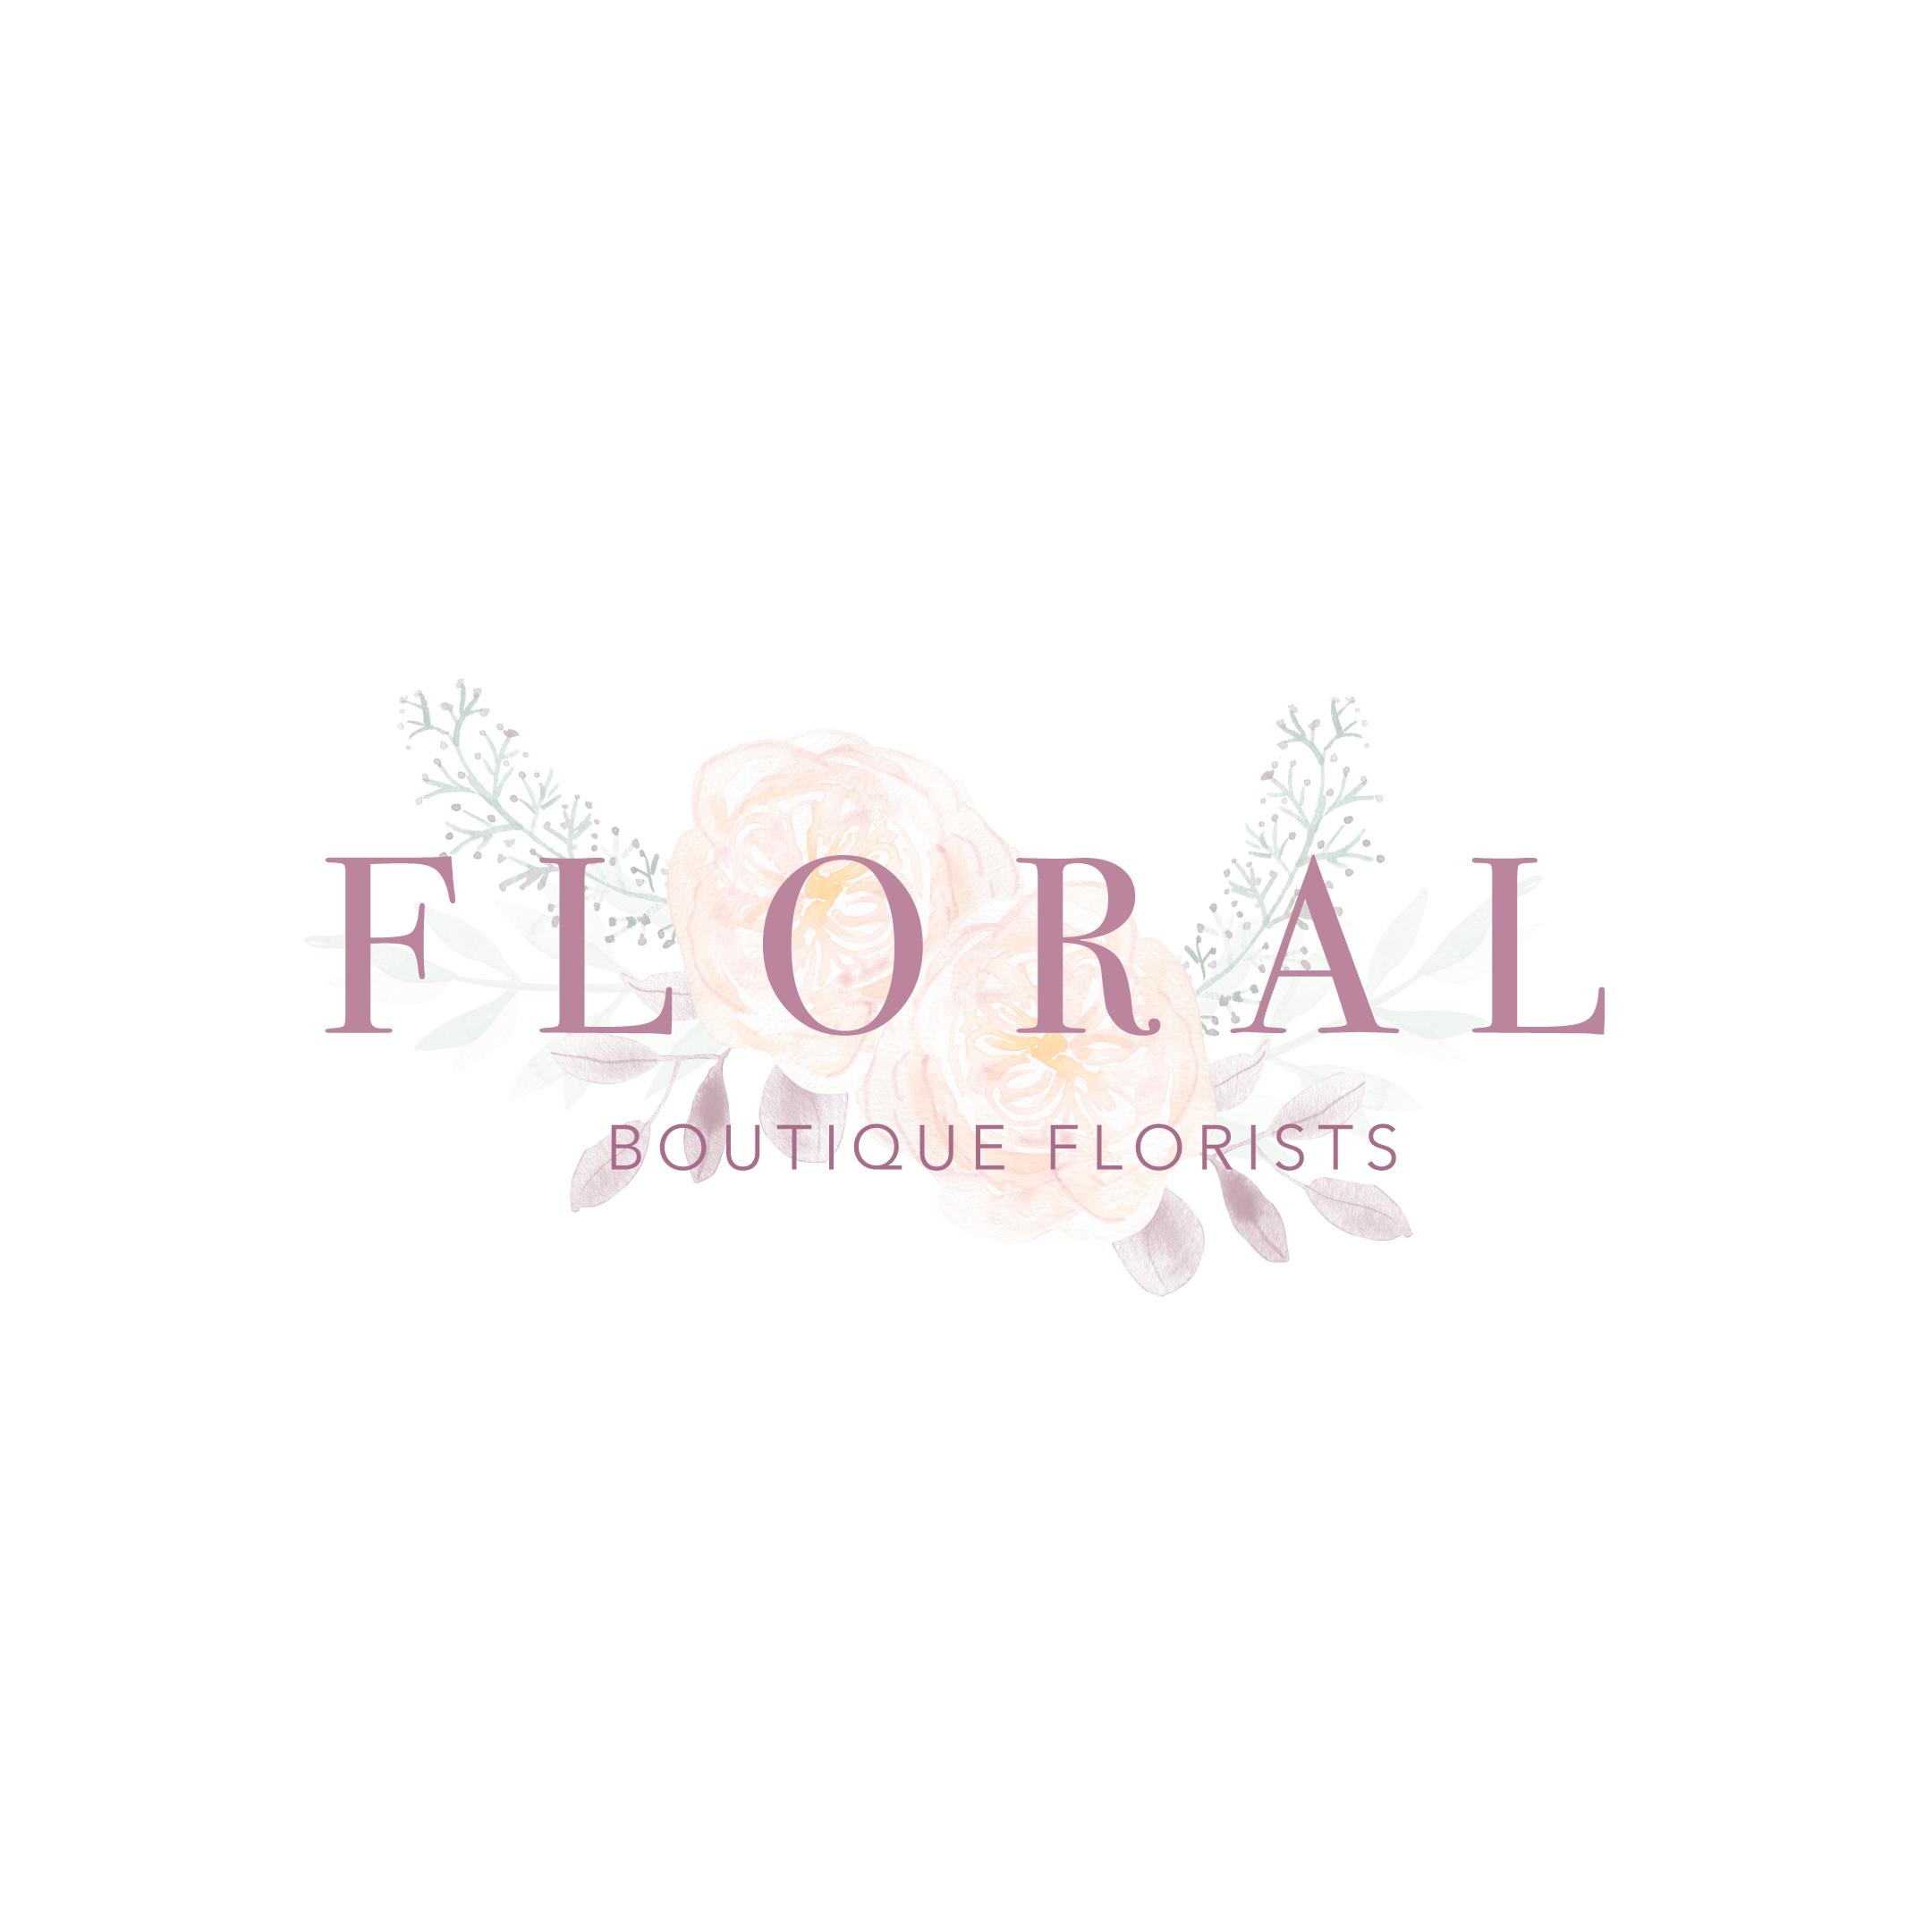 floral@2x.png